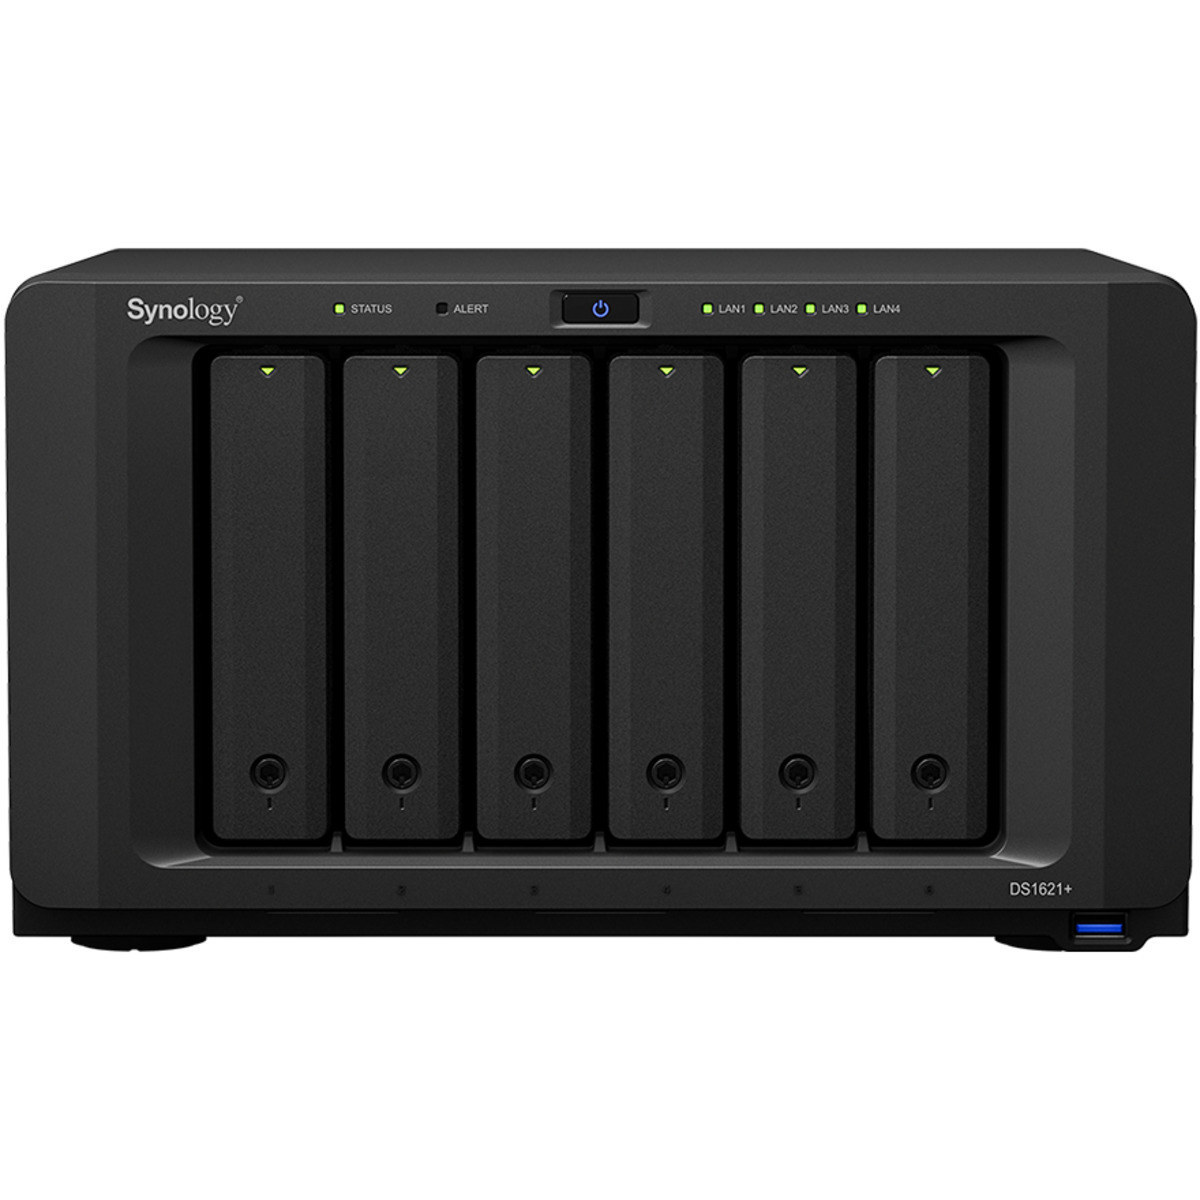 buy $1605 Synology DiskStation DS1621+ 6tb Desktop NAS - Network Attached Storage Device 6x1000gb Crucial MX500 CT1000MX500SSD1 2.5 SATA 6Gb/s SSD CONSUMER Class Drives Installed - Burn-In Tested - ON SALE - nas headquarters buy network attached storage server device das new raid-5 free shipping usa holiday new year clearance sale DiskStation DS1621+